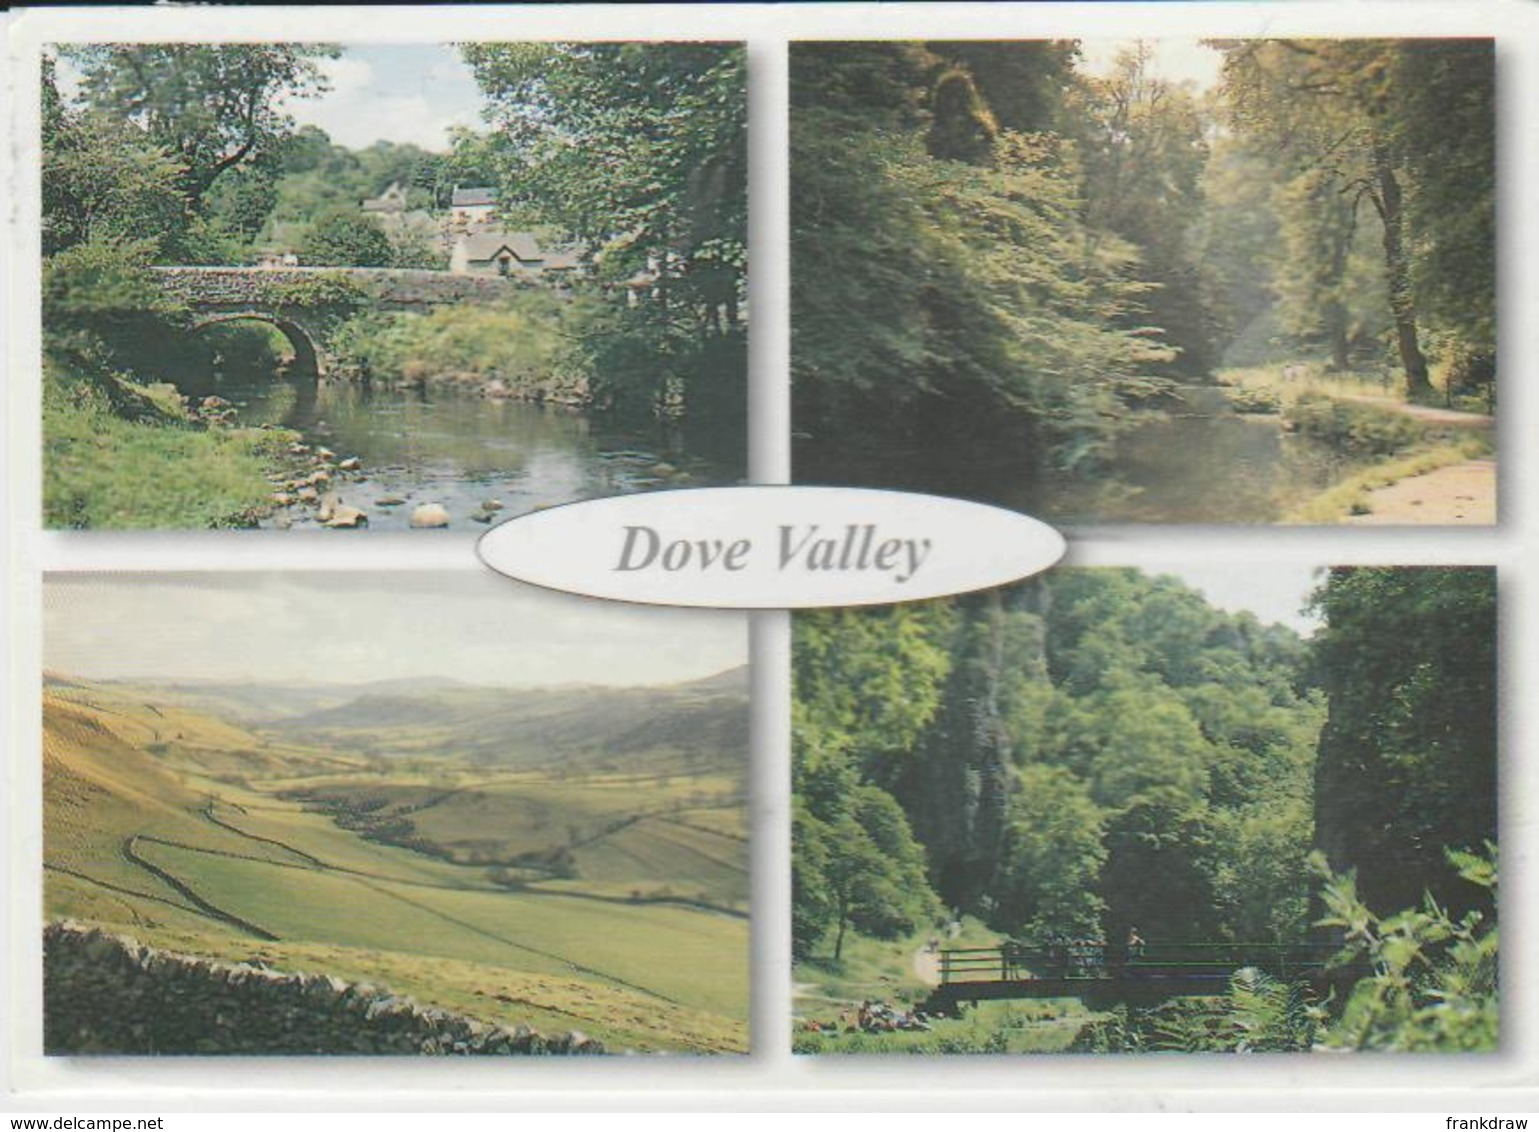 Postcard - Mill Dale - Beresford Dale - Dove Valley Card No..pkd214  - Posted  But Date Obscured Very Good - Postcards